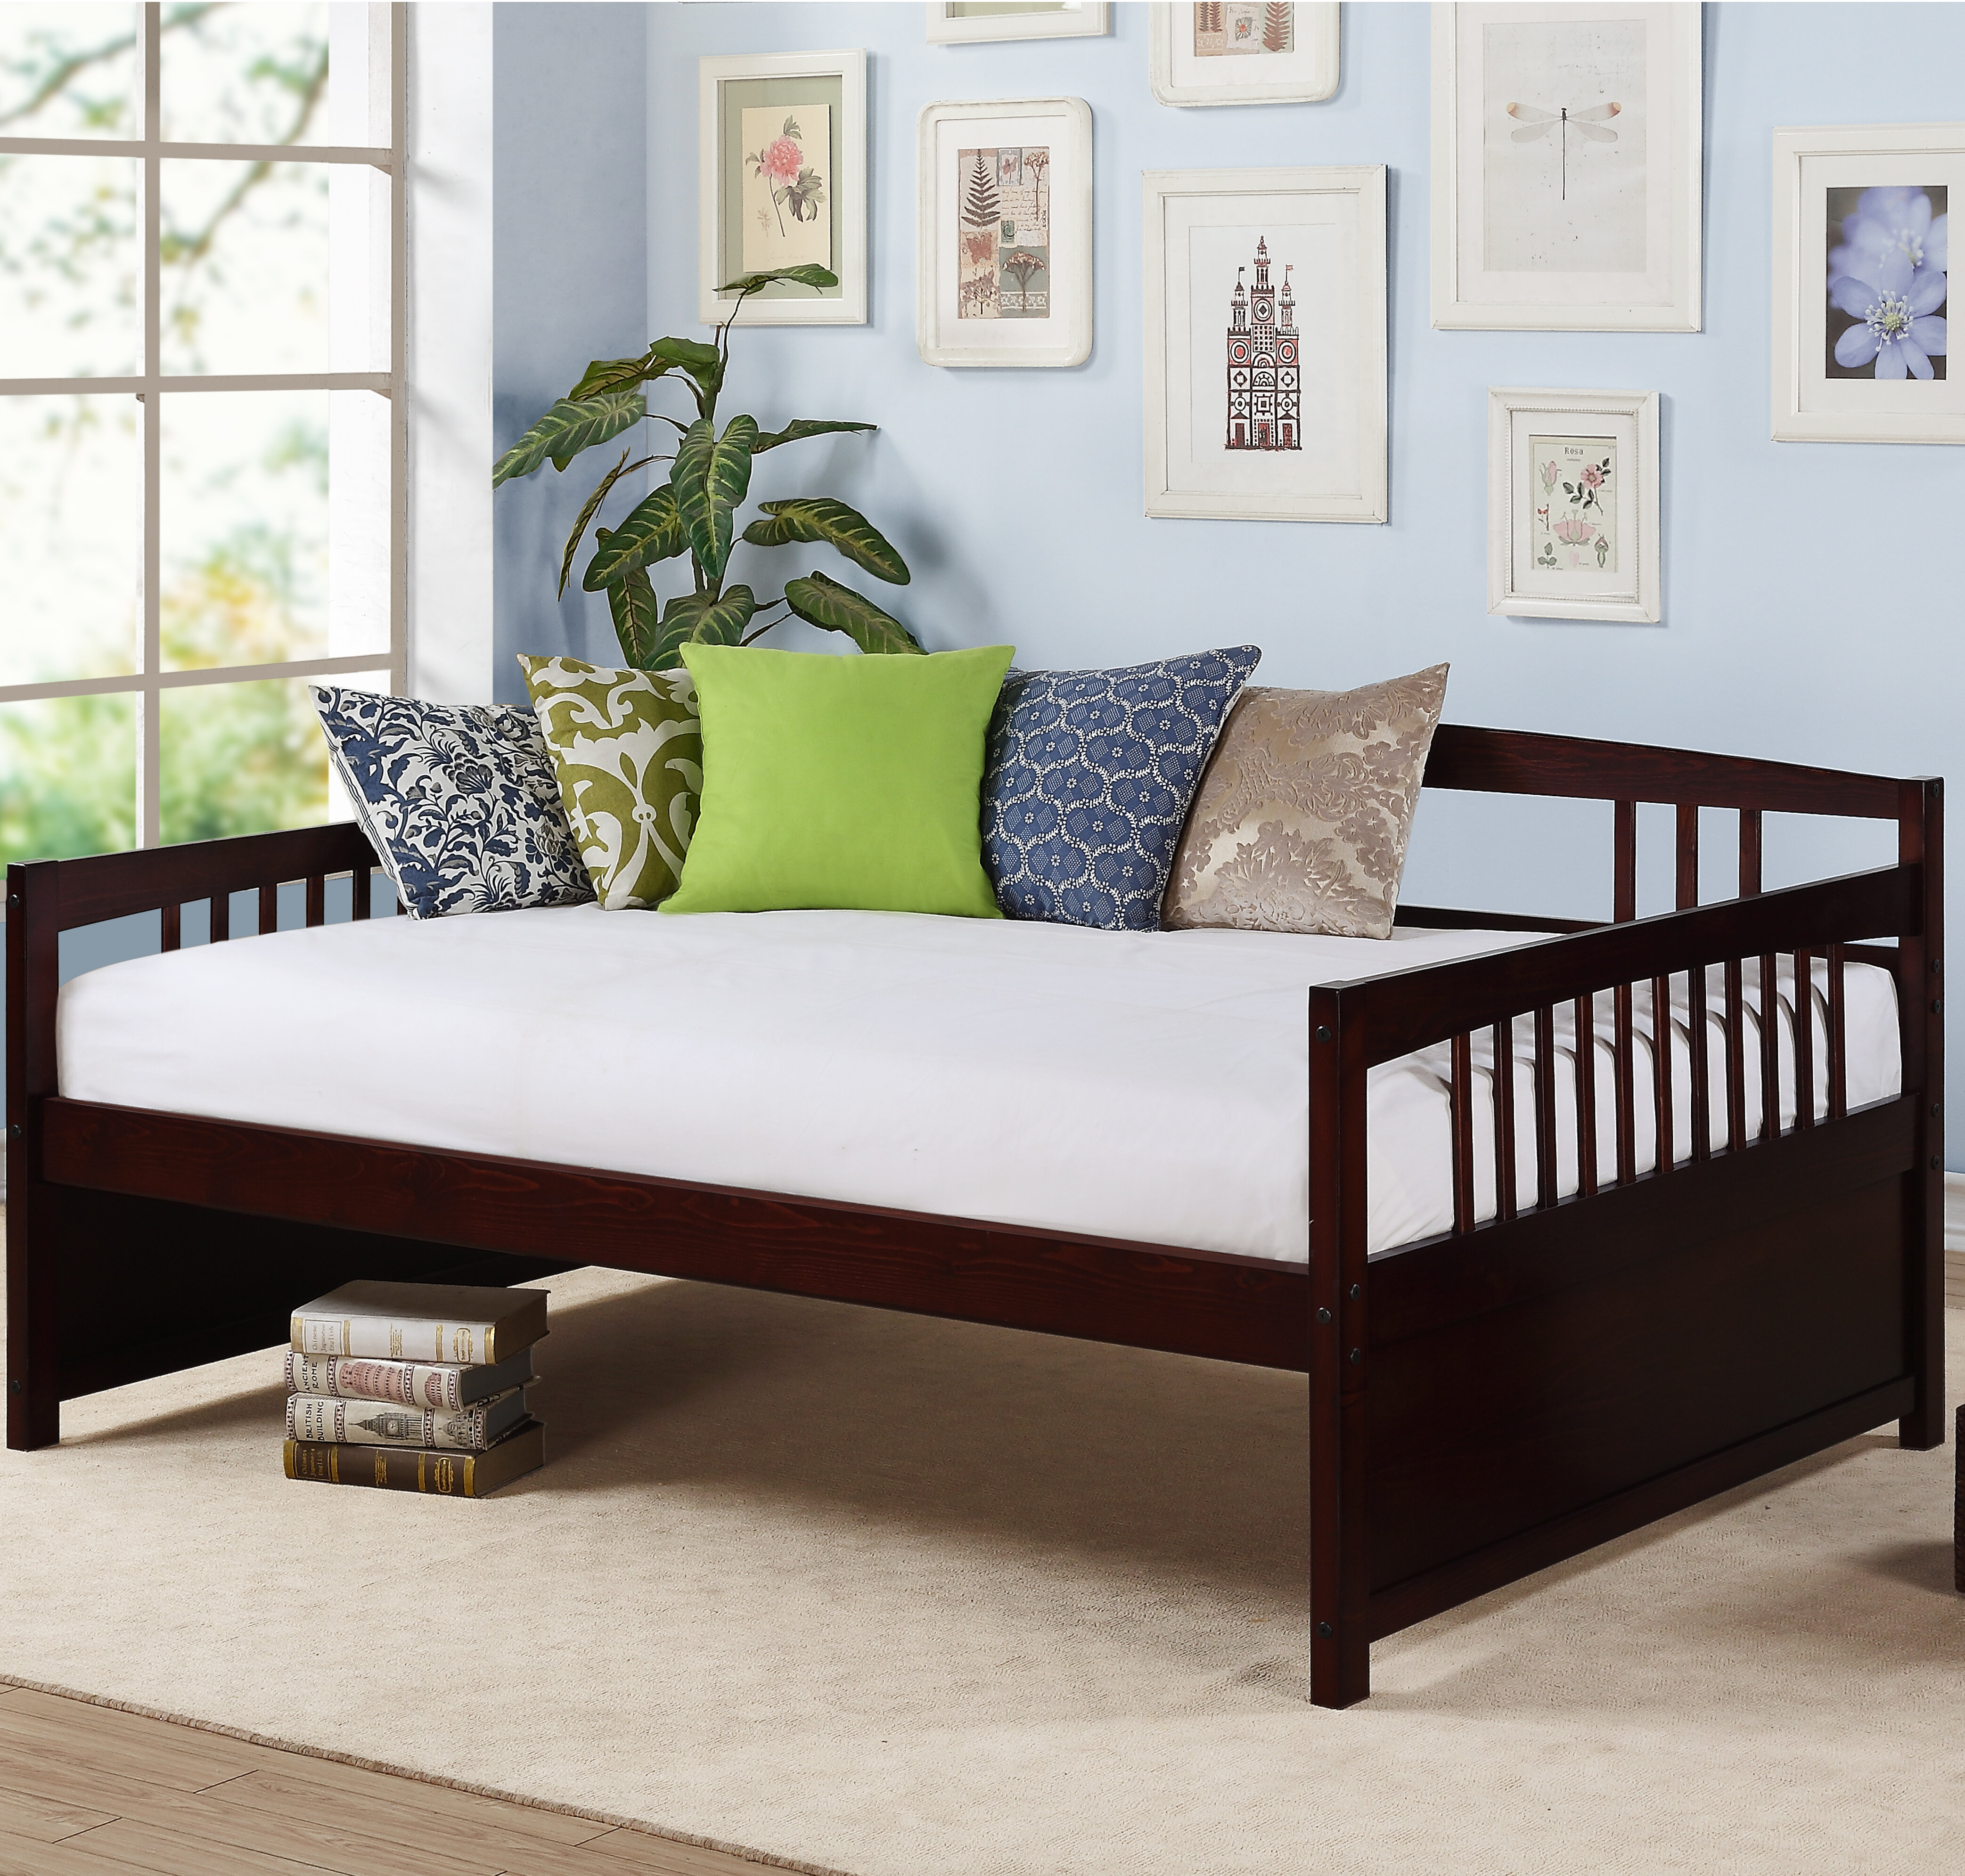 and couch dining dillan com amazon with microfiber convertible upholstery wood futon kitchen dp bed dhp tan legs